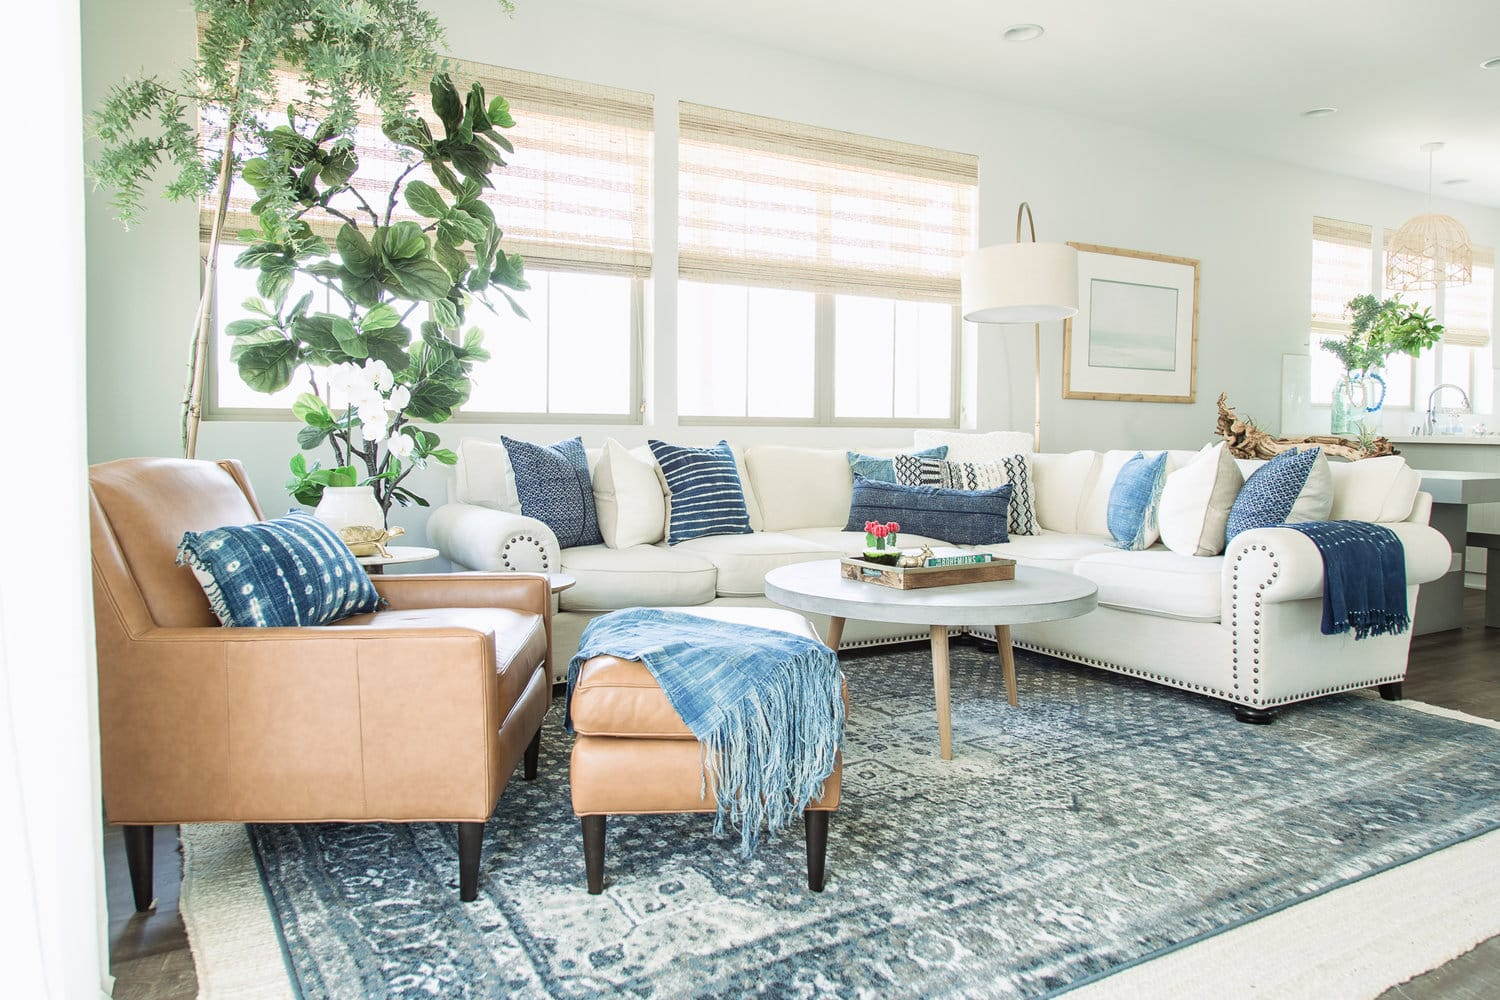 I just love the colors in this coastal living room!